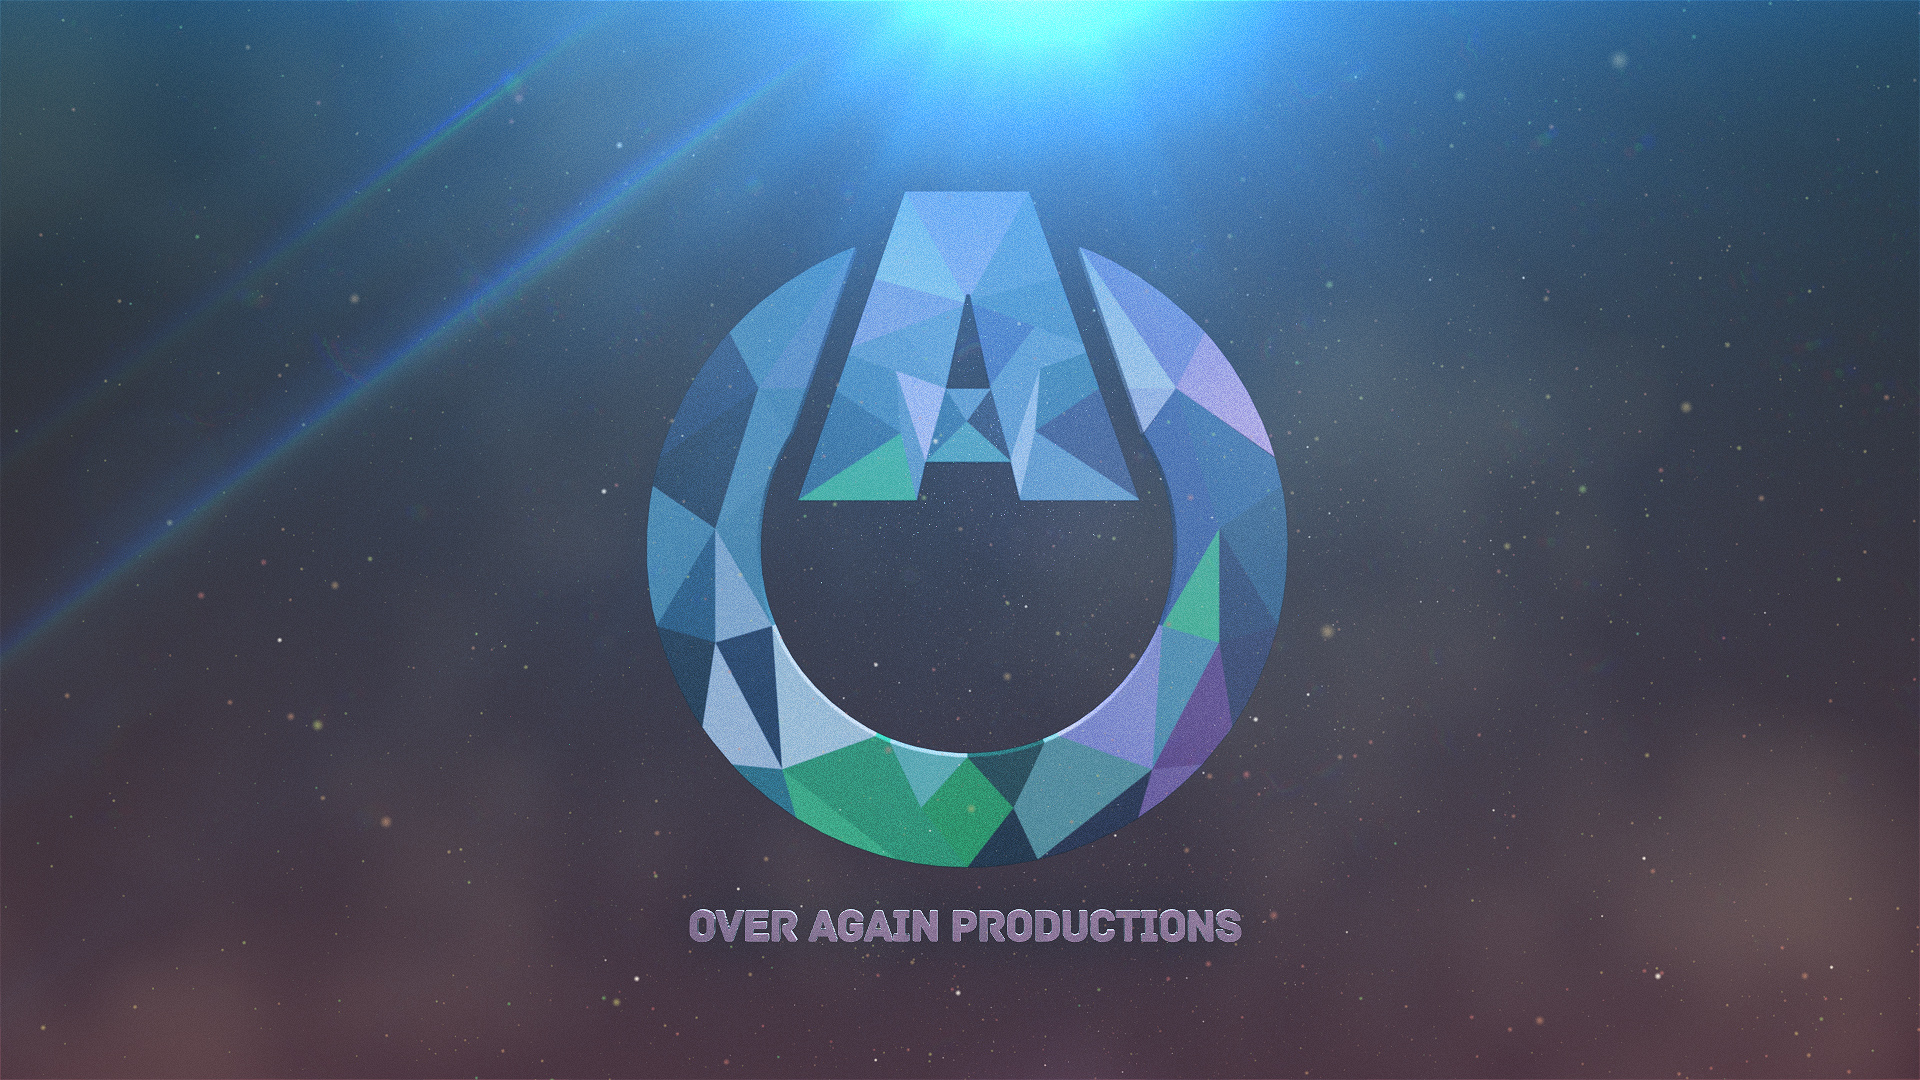 Over Again Productions - Logo reveal / Bumper